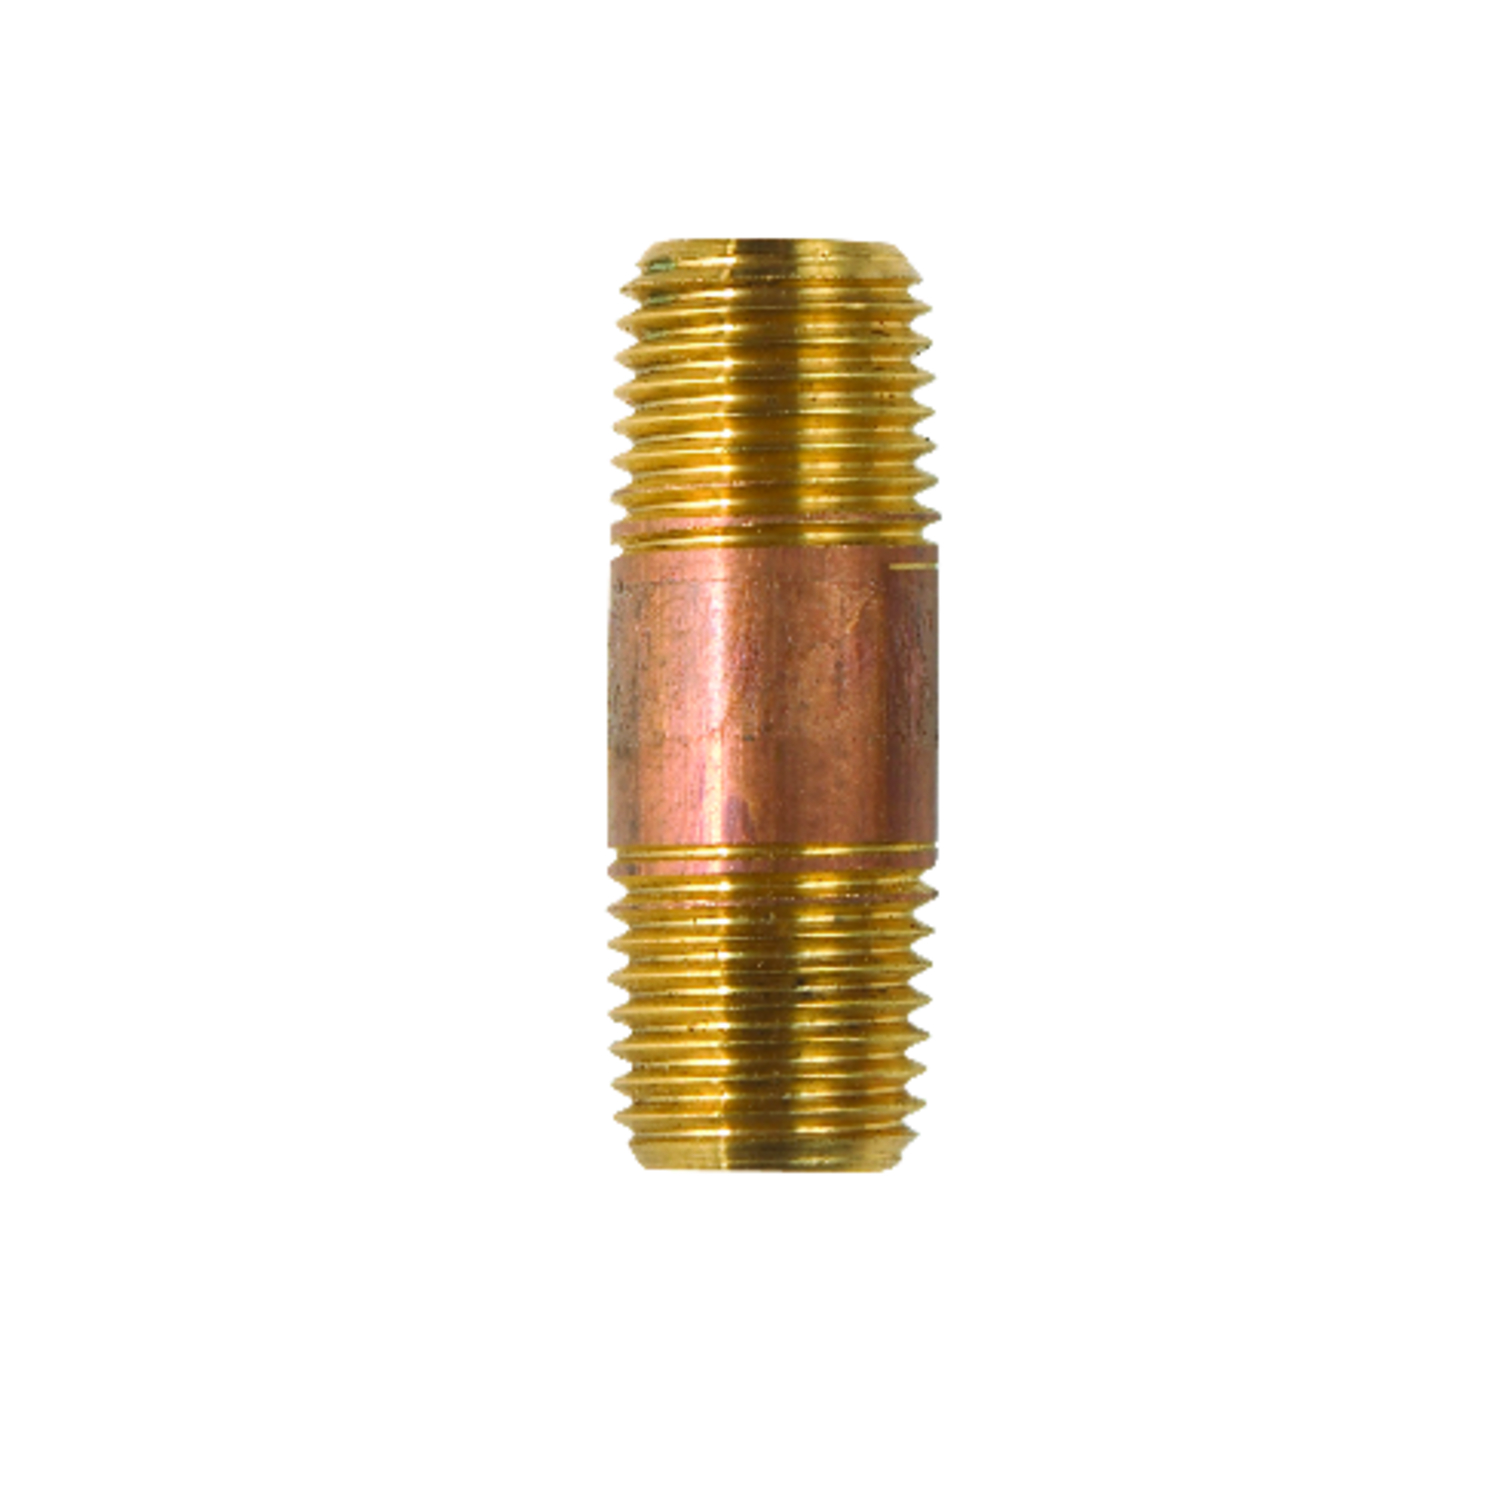 JMF  1/4  MPT   x 1/4 in. Dia. MPT  Nipple  Red Brass  Pipe Nipple